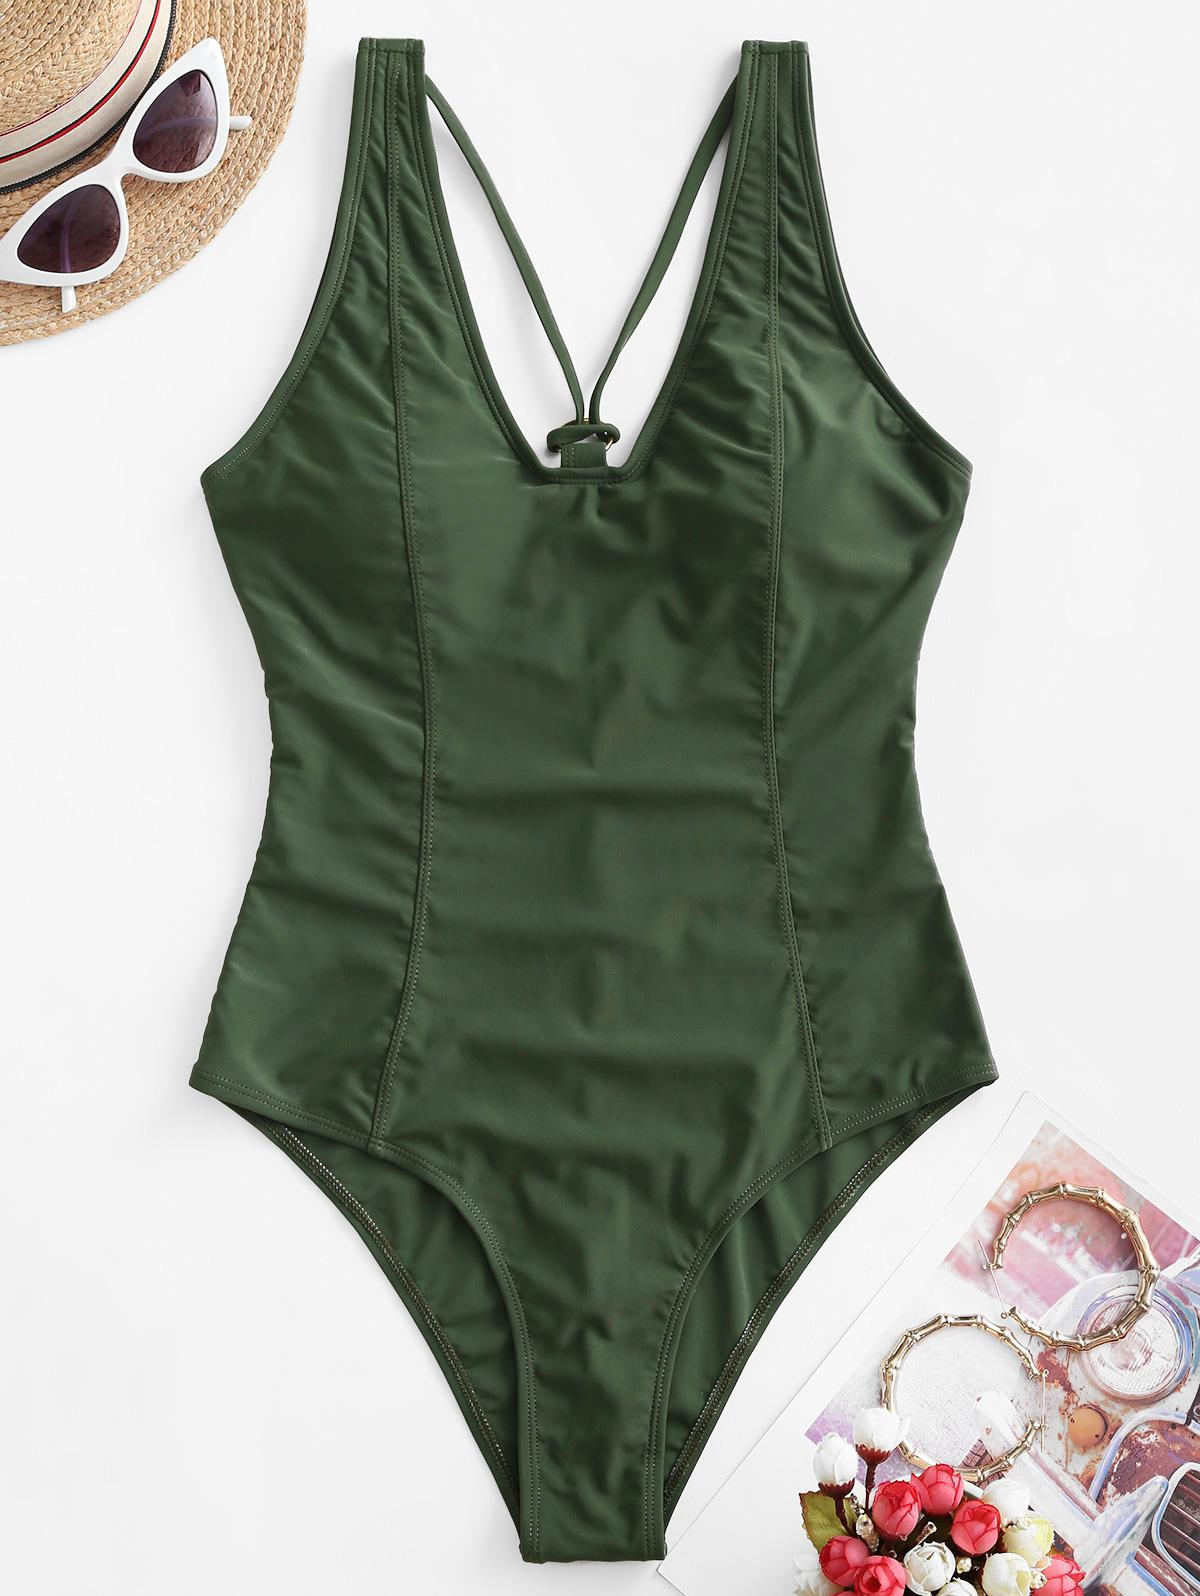 ZAFUL Princess Seam Strappy Ring Linked One-piece Swimsuit thumbnail